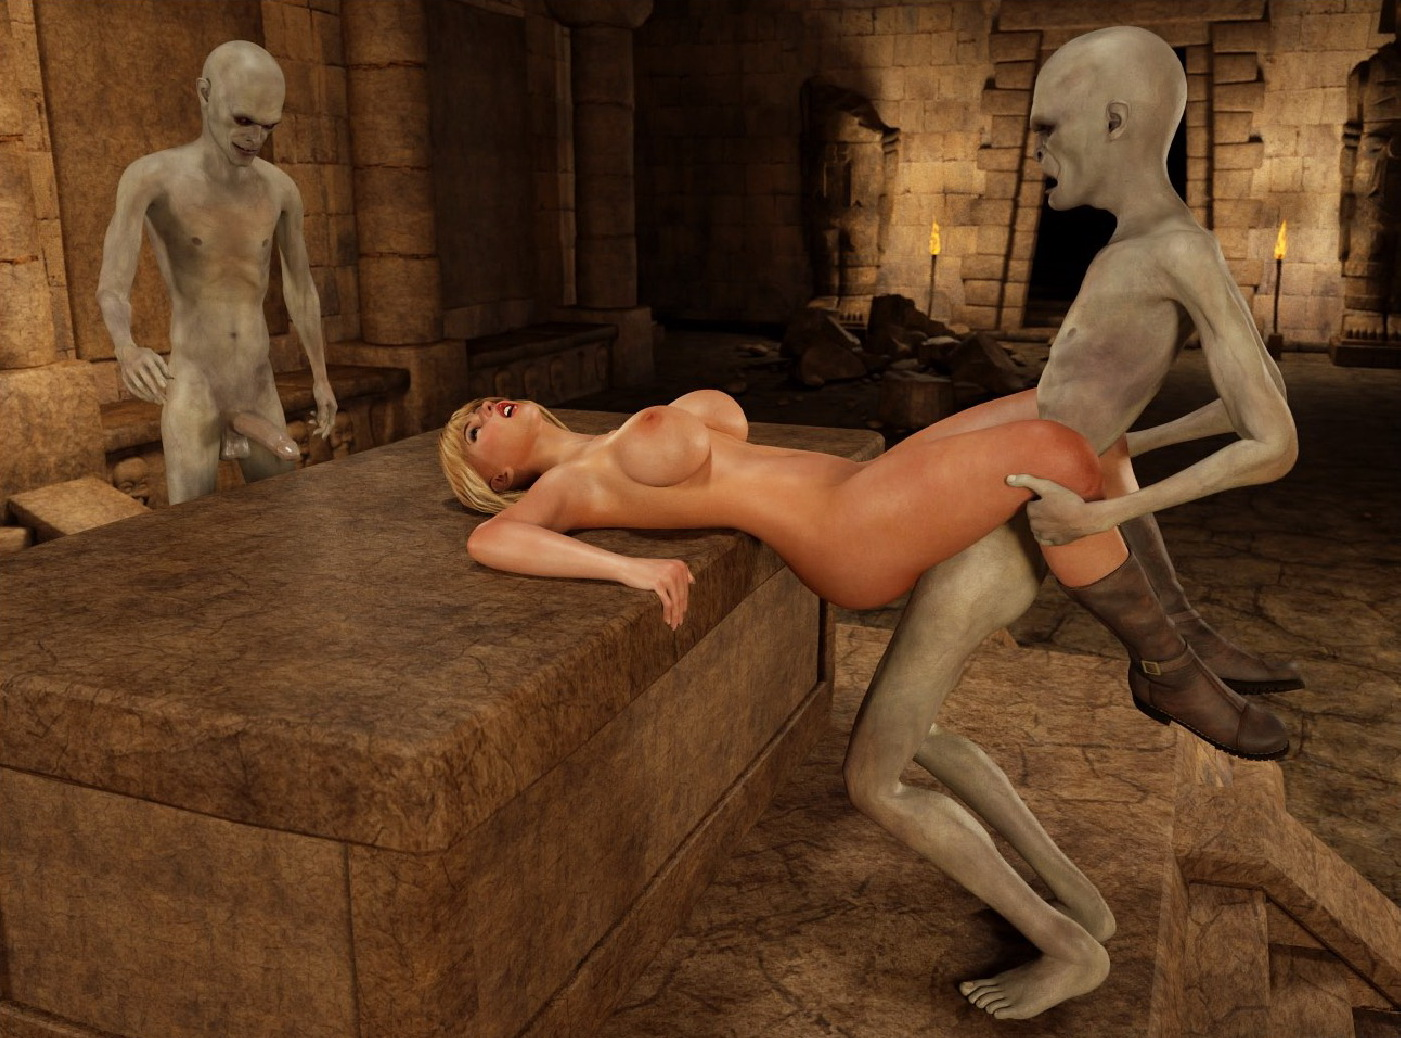 3d zombie cartoon sex mp4 free download cartoon scene